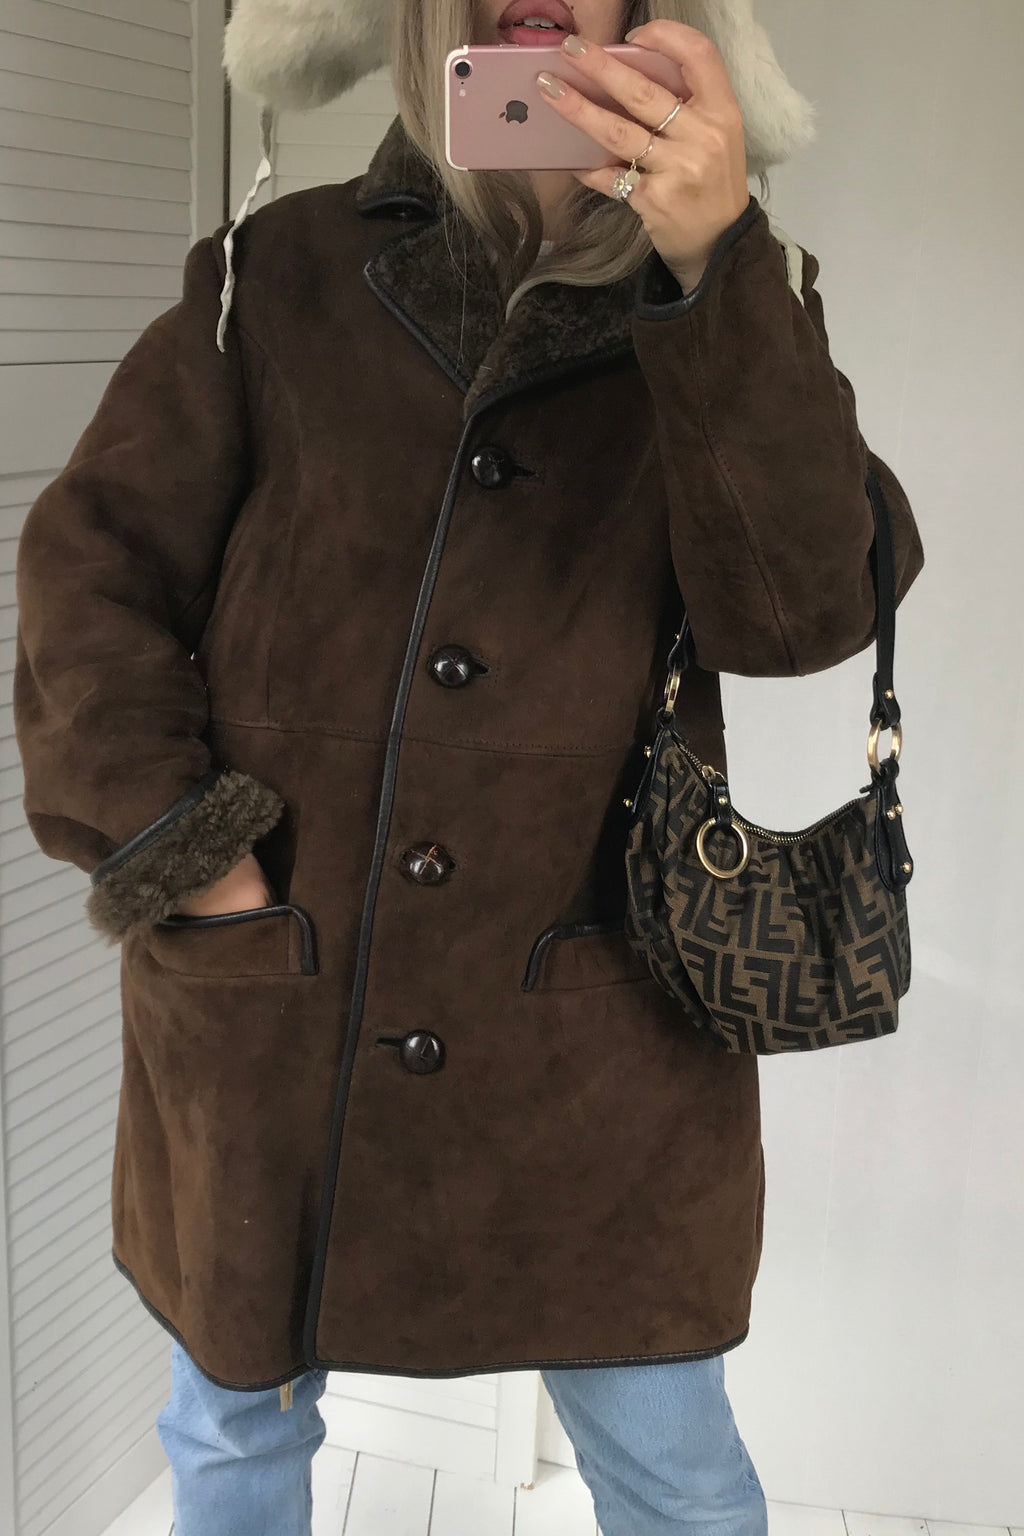 Vintage 1970s 100% Real Suede Dark Chocolate Brown Shearling Sheepskin Jacket